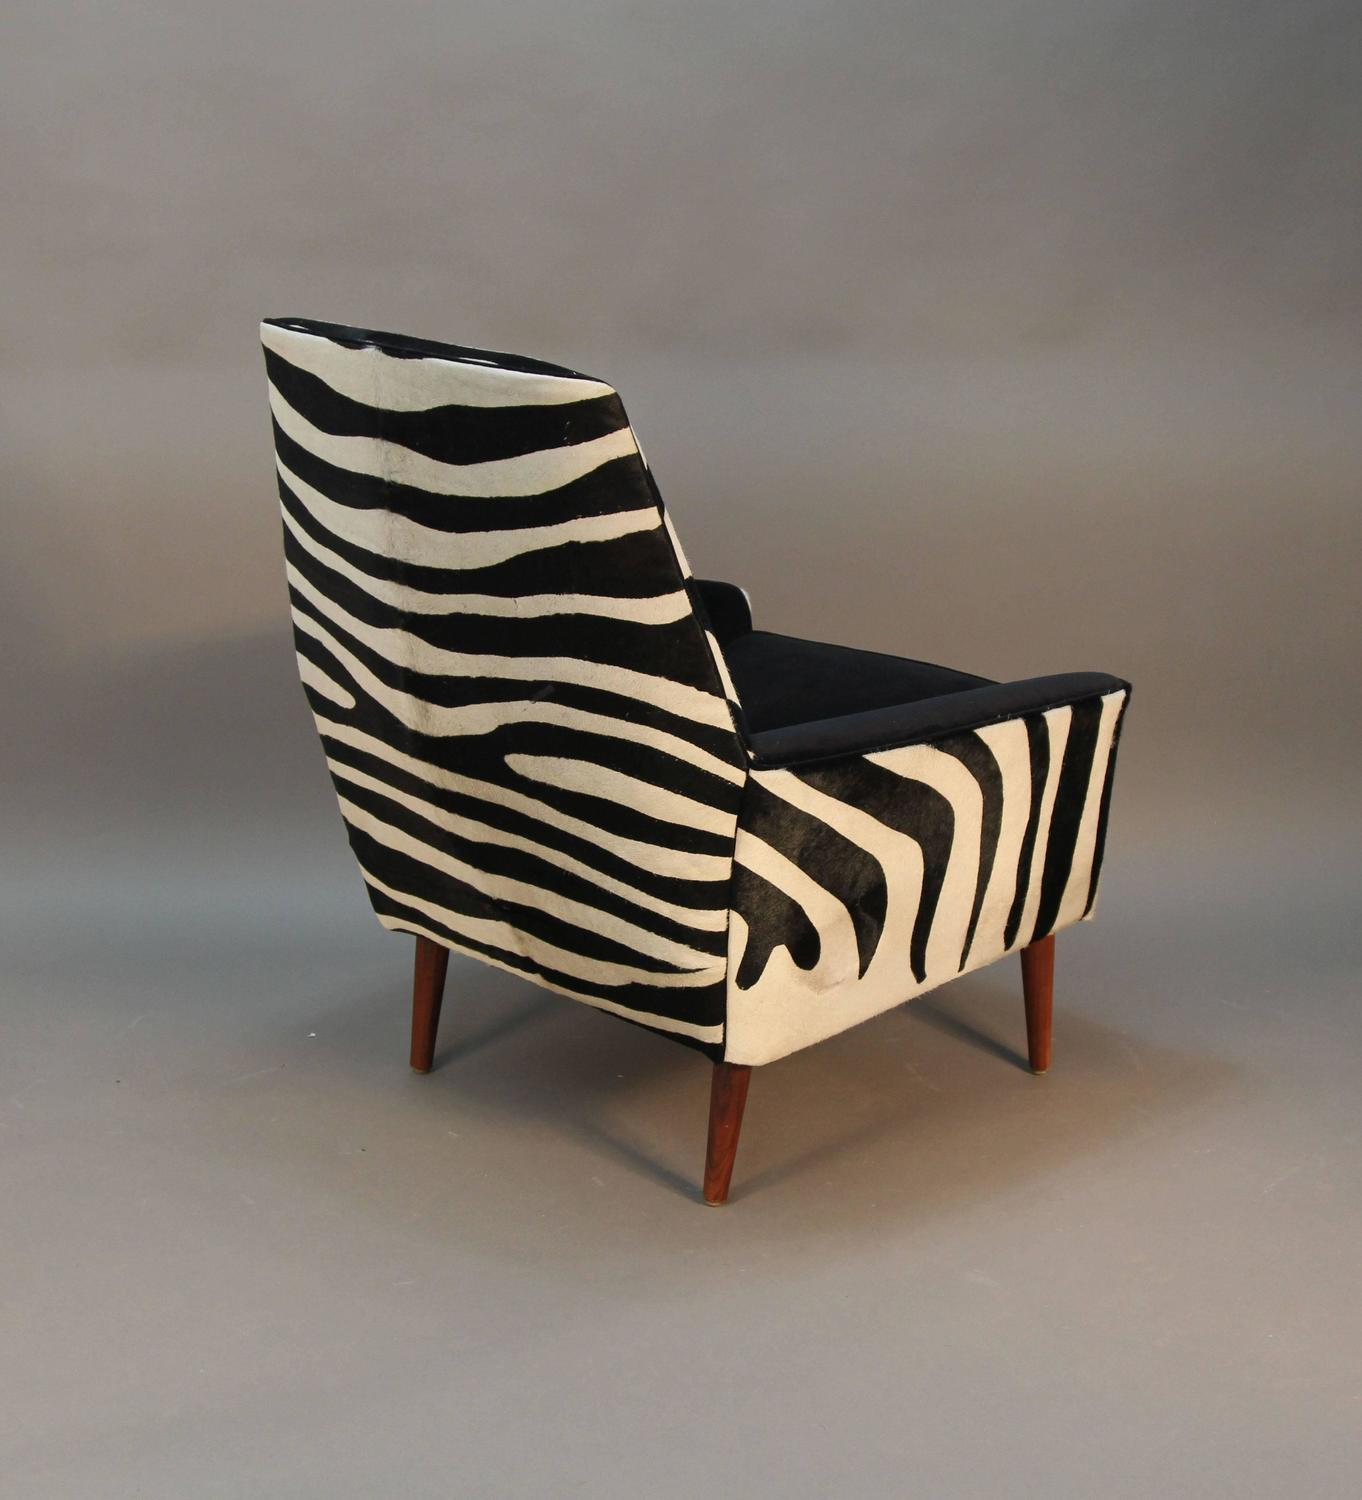 zebra print chairs for sale fishing chair brolly clamp pair of newly upholstered in cowhide mid